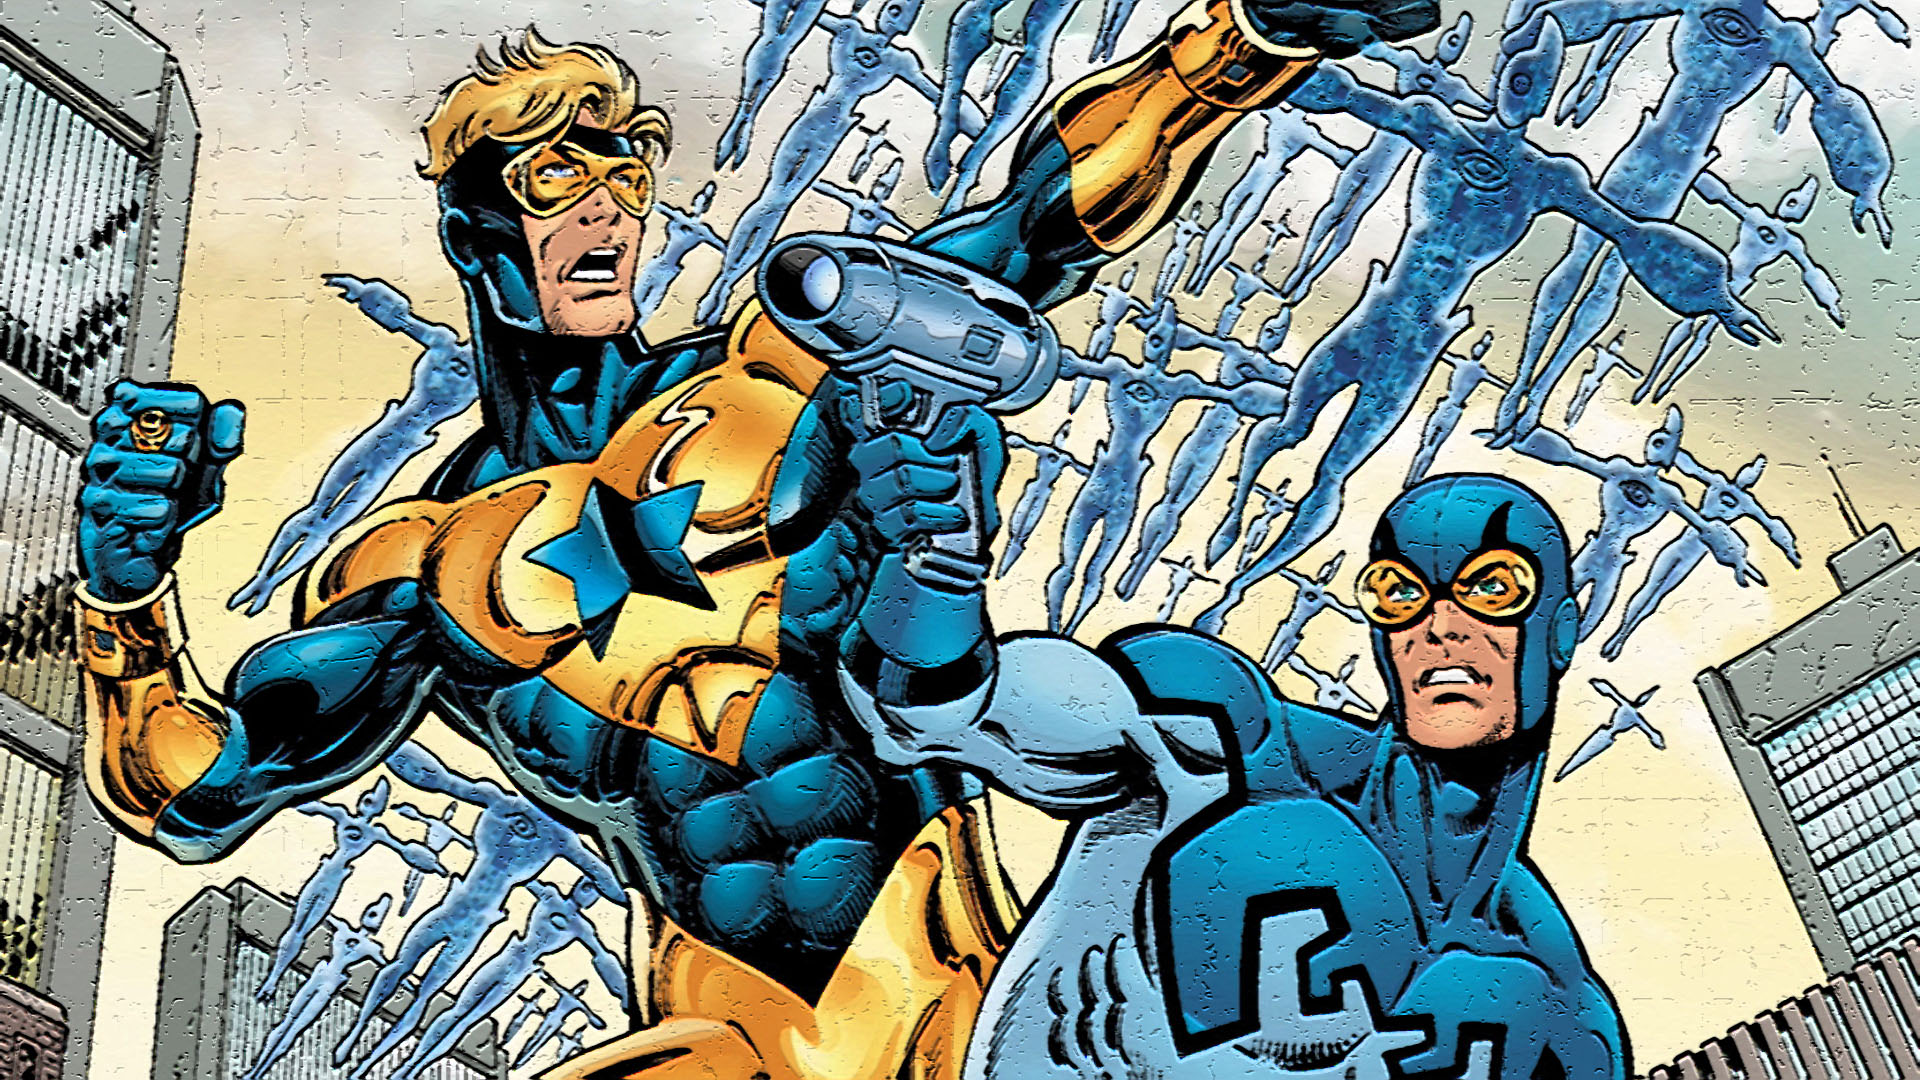 Booster Gold HD Wallpaper Background Image 1920x1080 ID 1920x1080